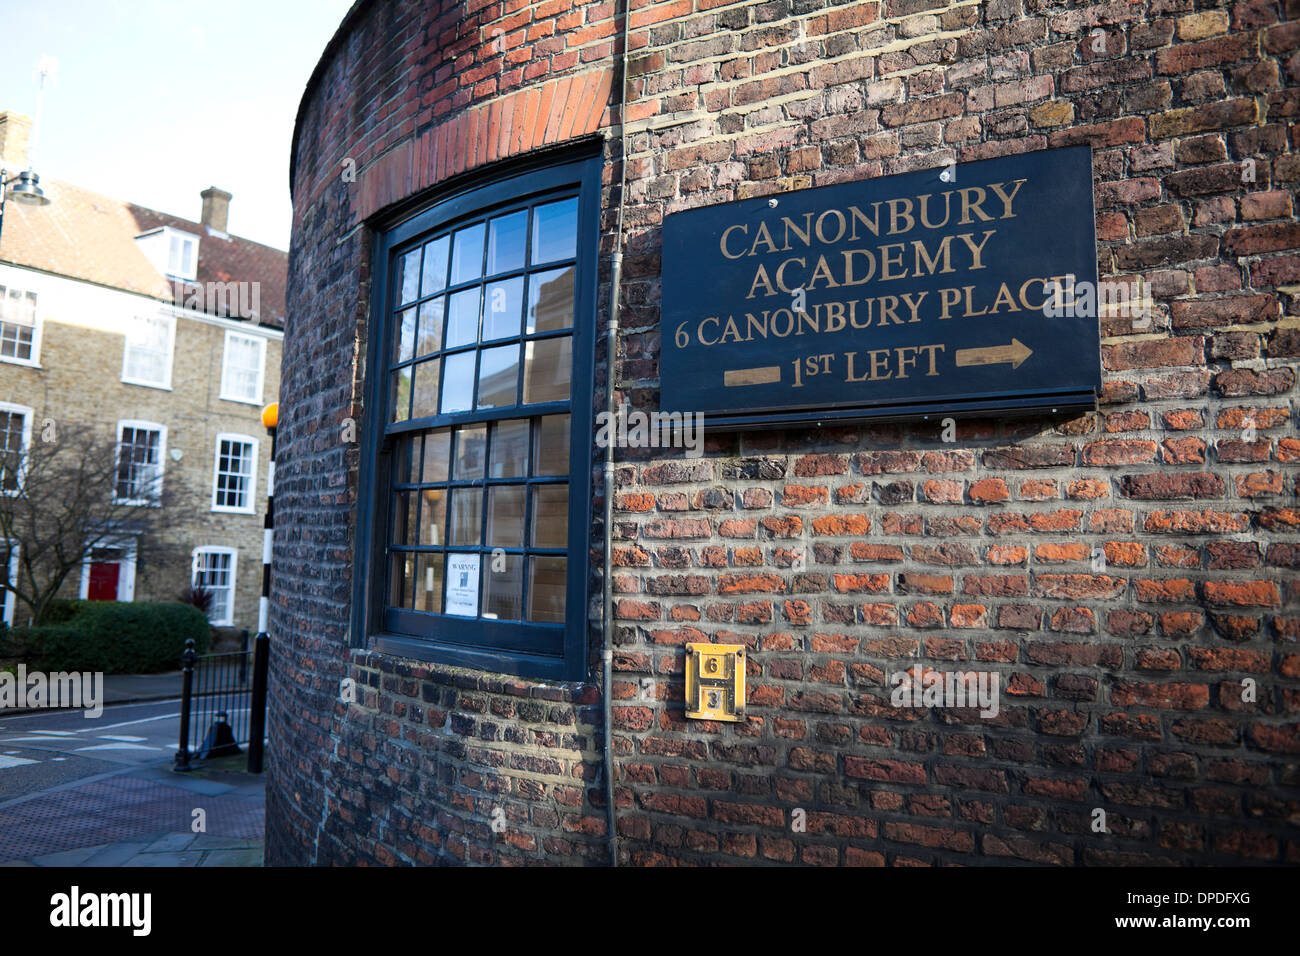 Canonbury Academy sign, Islington, North London, UK, England, Great Britain - Stock Image